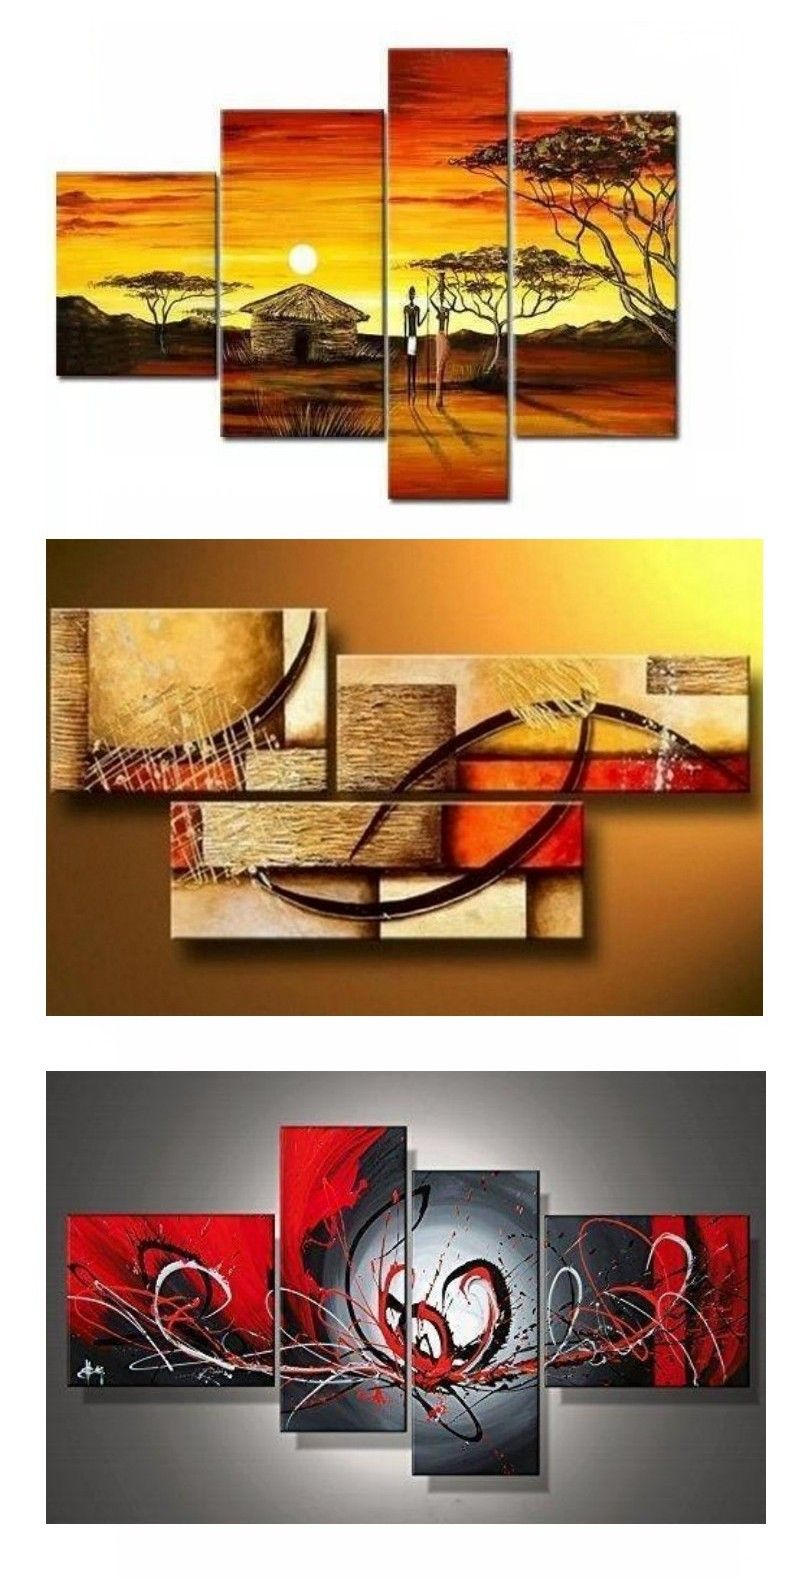 100 Hand Painted Canvas Painting For Sale Modern Canvas Painting Contemporary In 2020 Abstract Wall Art Painting Abstract Canvas Wall Art Canvas Paintings For Sale